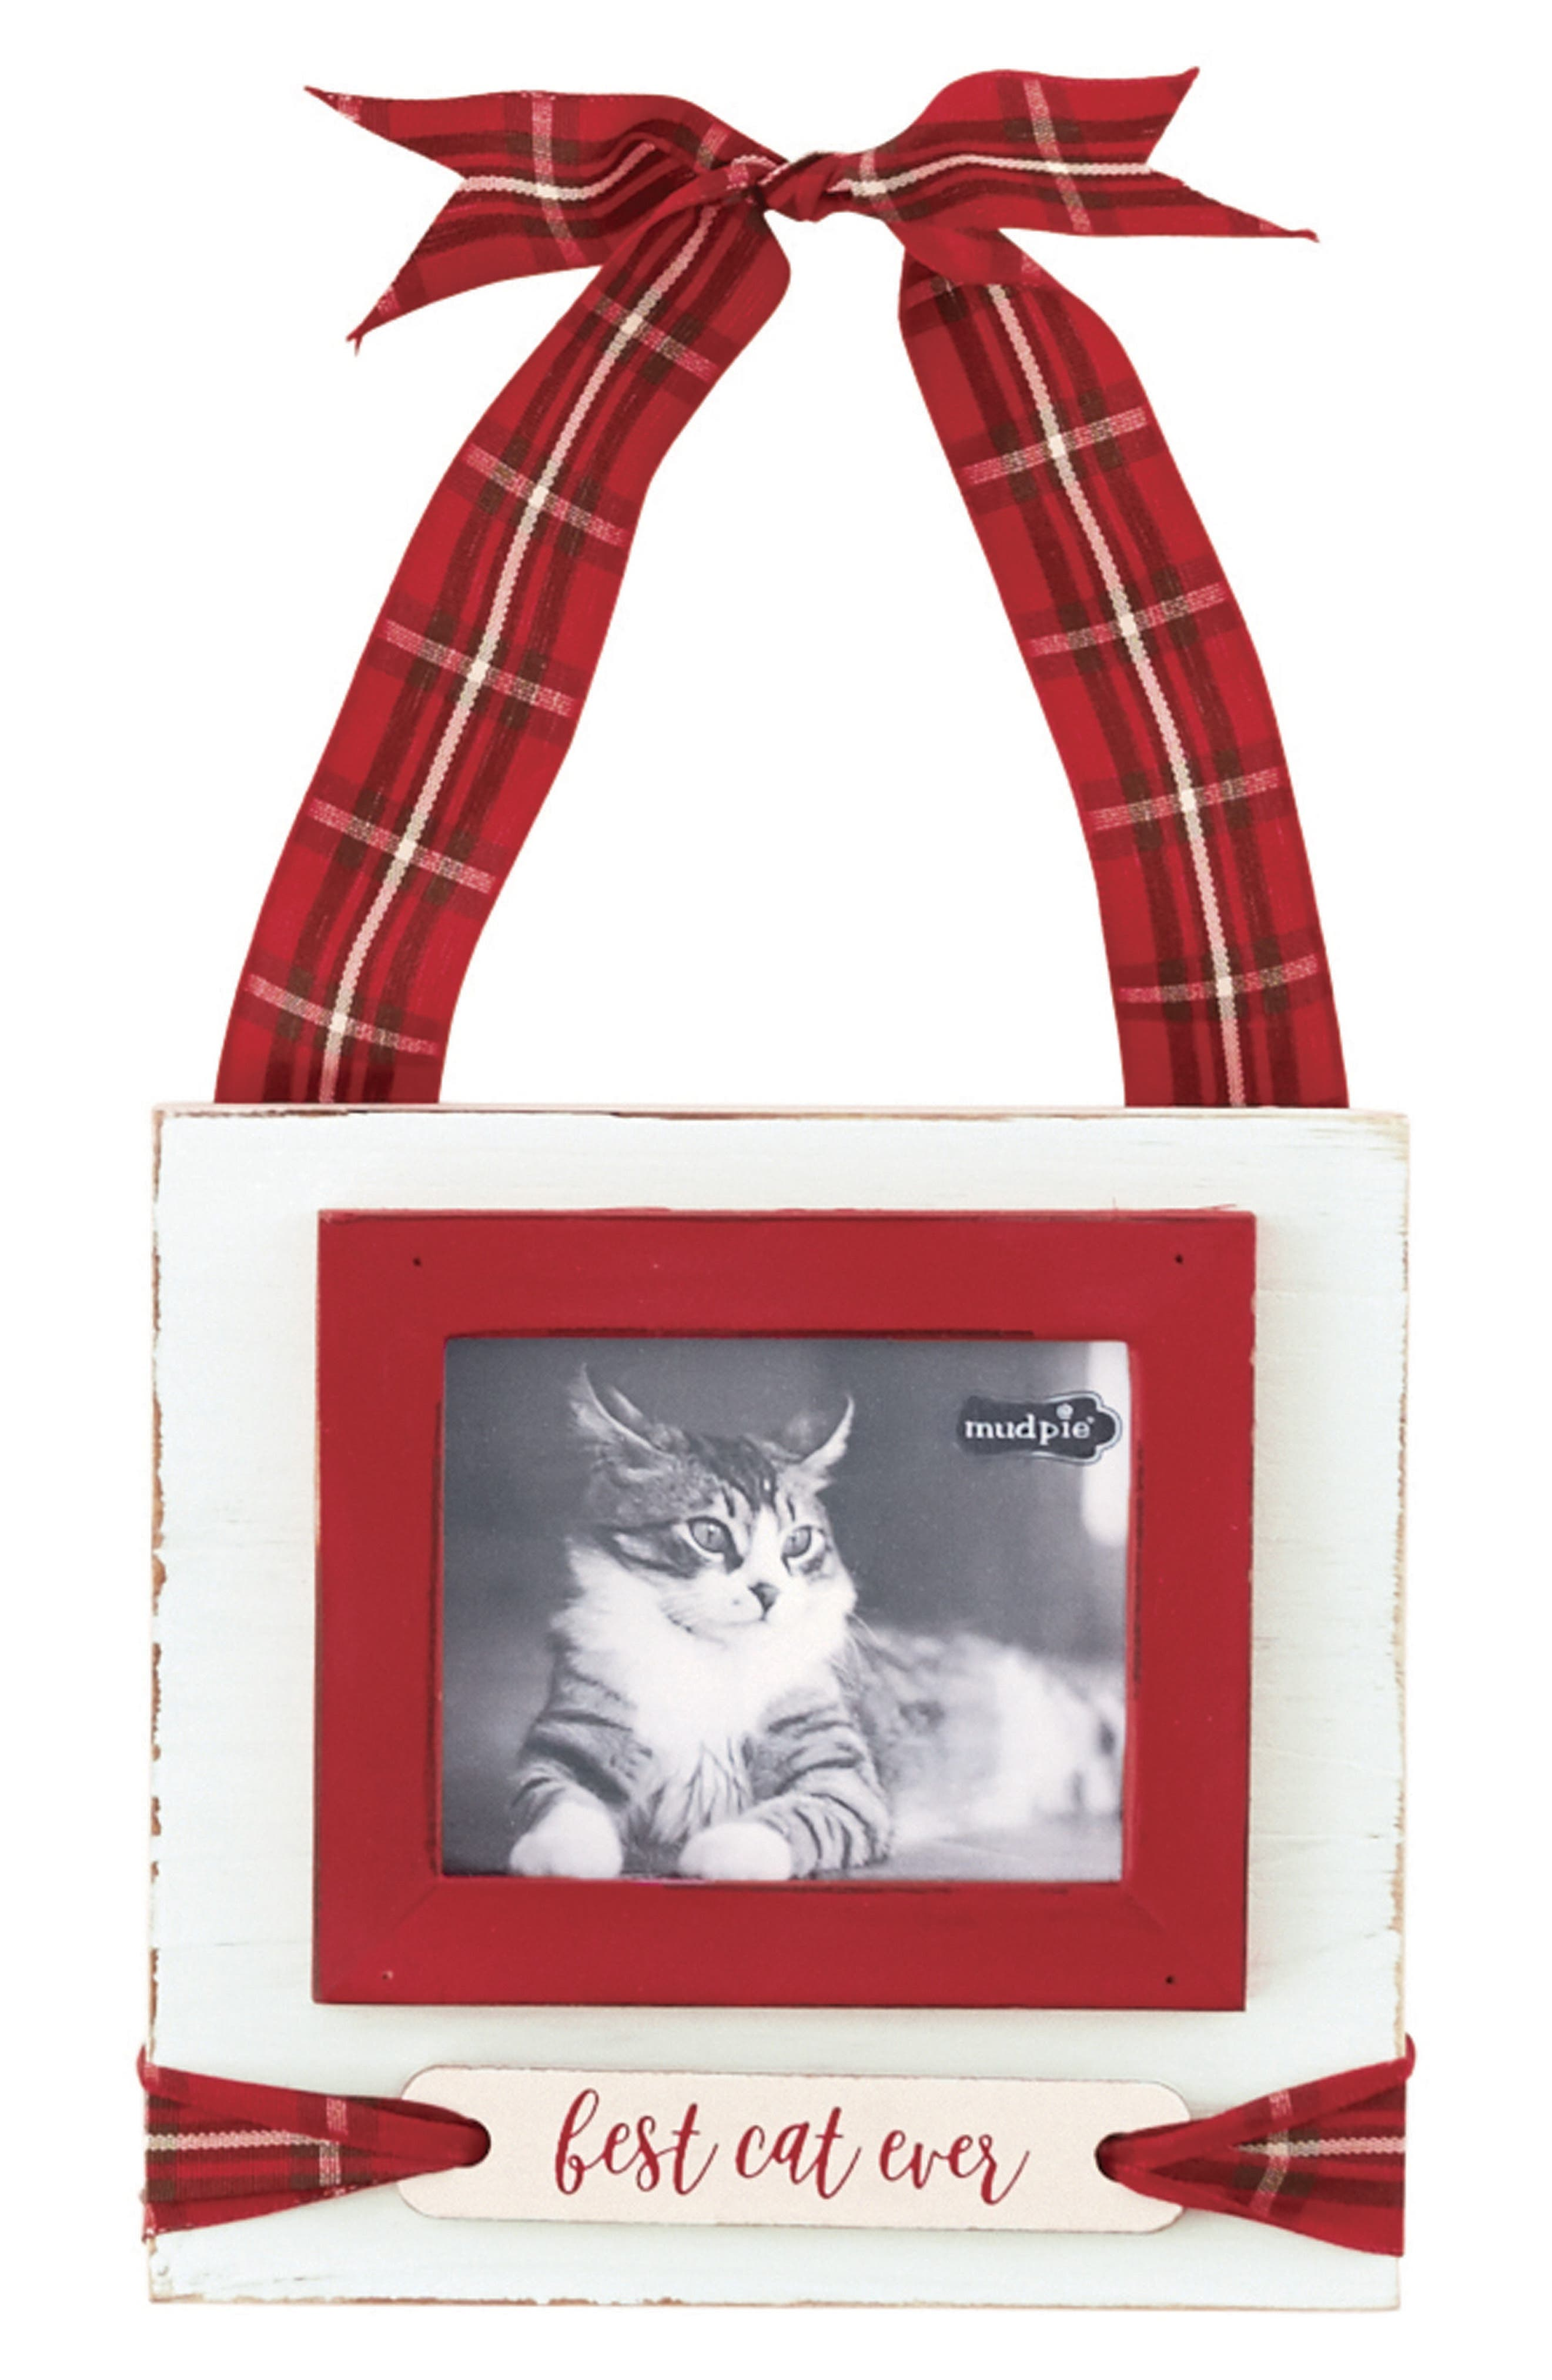 Main Image - Mud Pie Best Cat Ever Hanging Frame Ornament